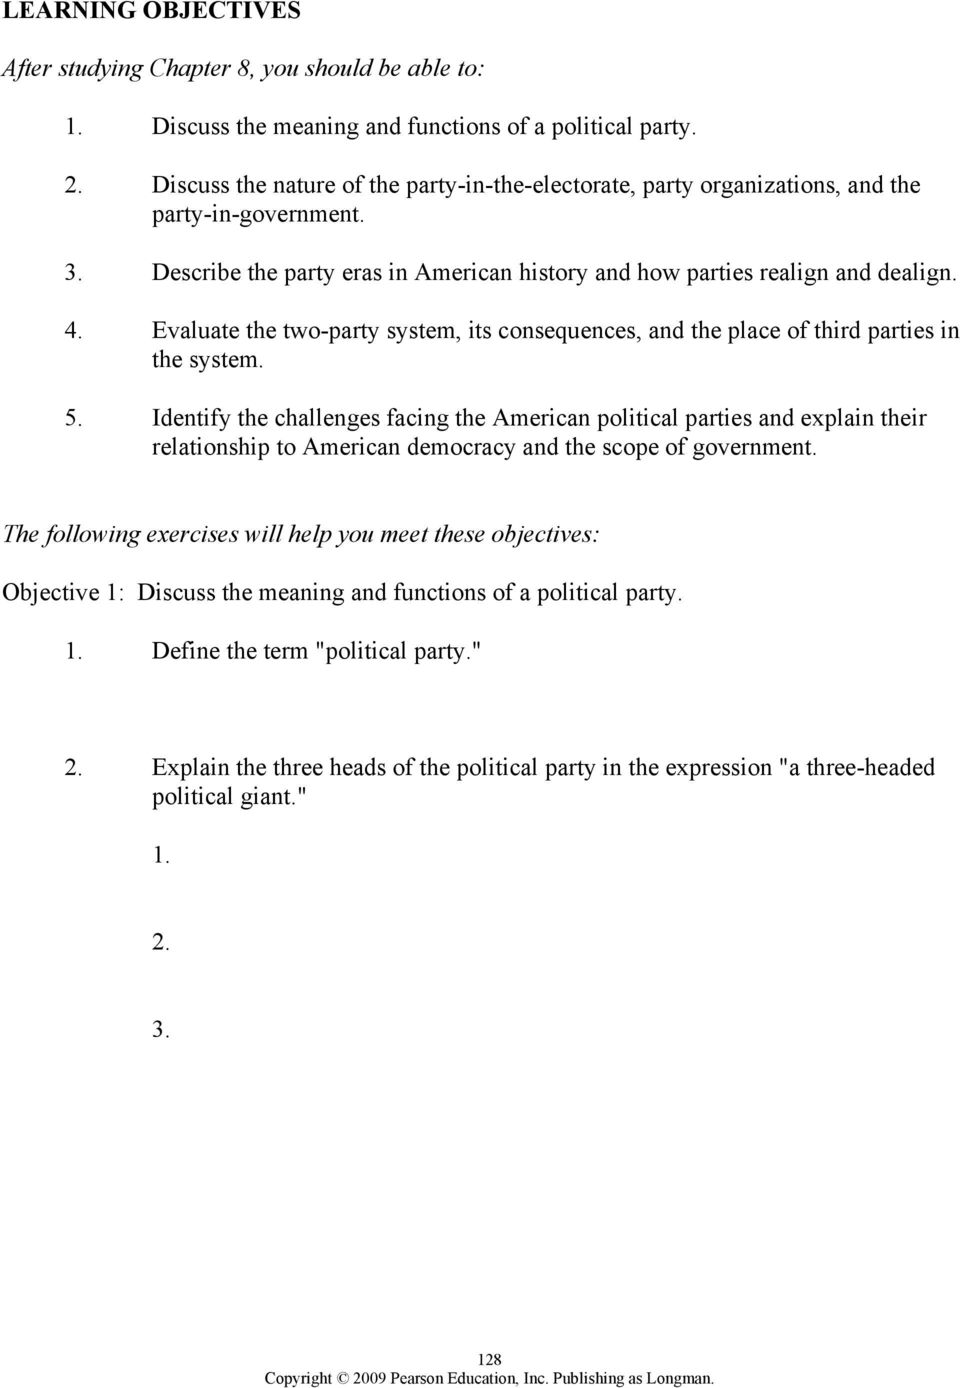 worksheet The Populist Movement The Value Of Third Parties Worksheet Answers chapter 8 political parties outline pdf evaluate the two party system its consequences and place of third parties